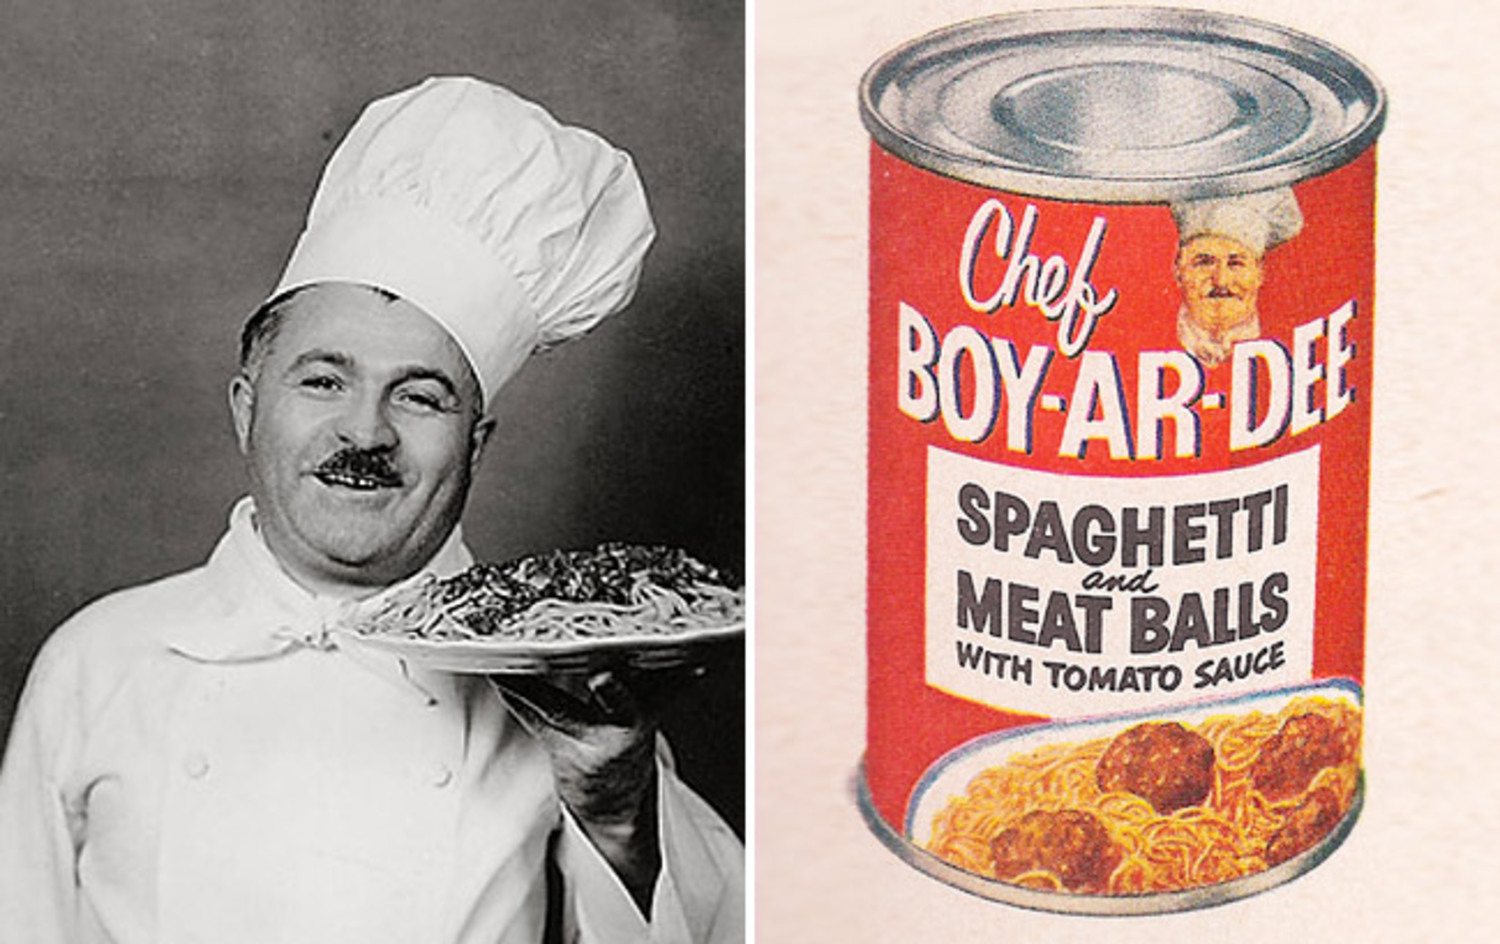 Hector Boiardi, the namesake behind the canned pasta we all know and love